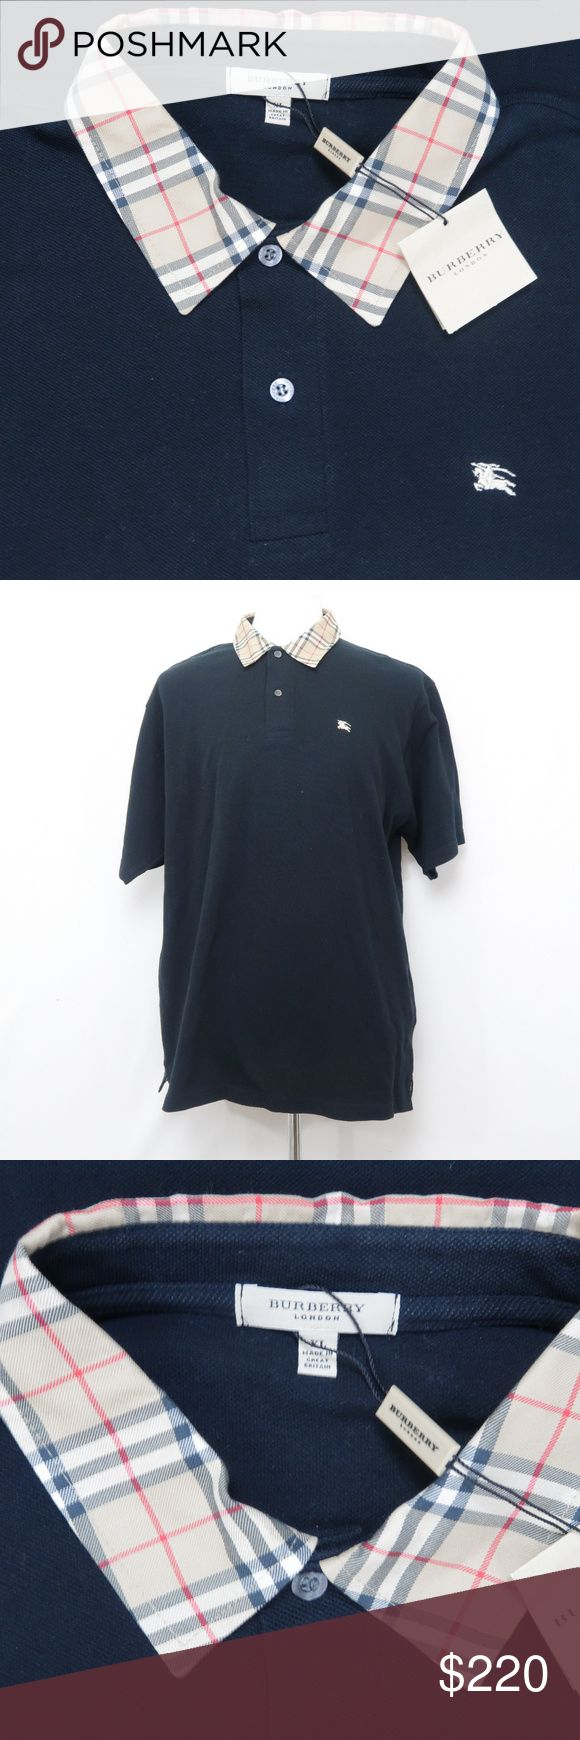 Burberry London Black Novacheck Polo Shirt Size XL Authentic, high quality Burberry signature novacheck collar horse logo polo shirt. 100% cotton. This particular one was made in Great Britain while most are now made outside of the UK/US. Original retail price on Burberry website is $525.  Measurements  Shoulders: 20.5 Pits: 24.75 Overall Length (from top of hem): 30.75 Burberry Shirts Polos